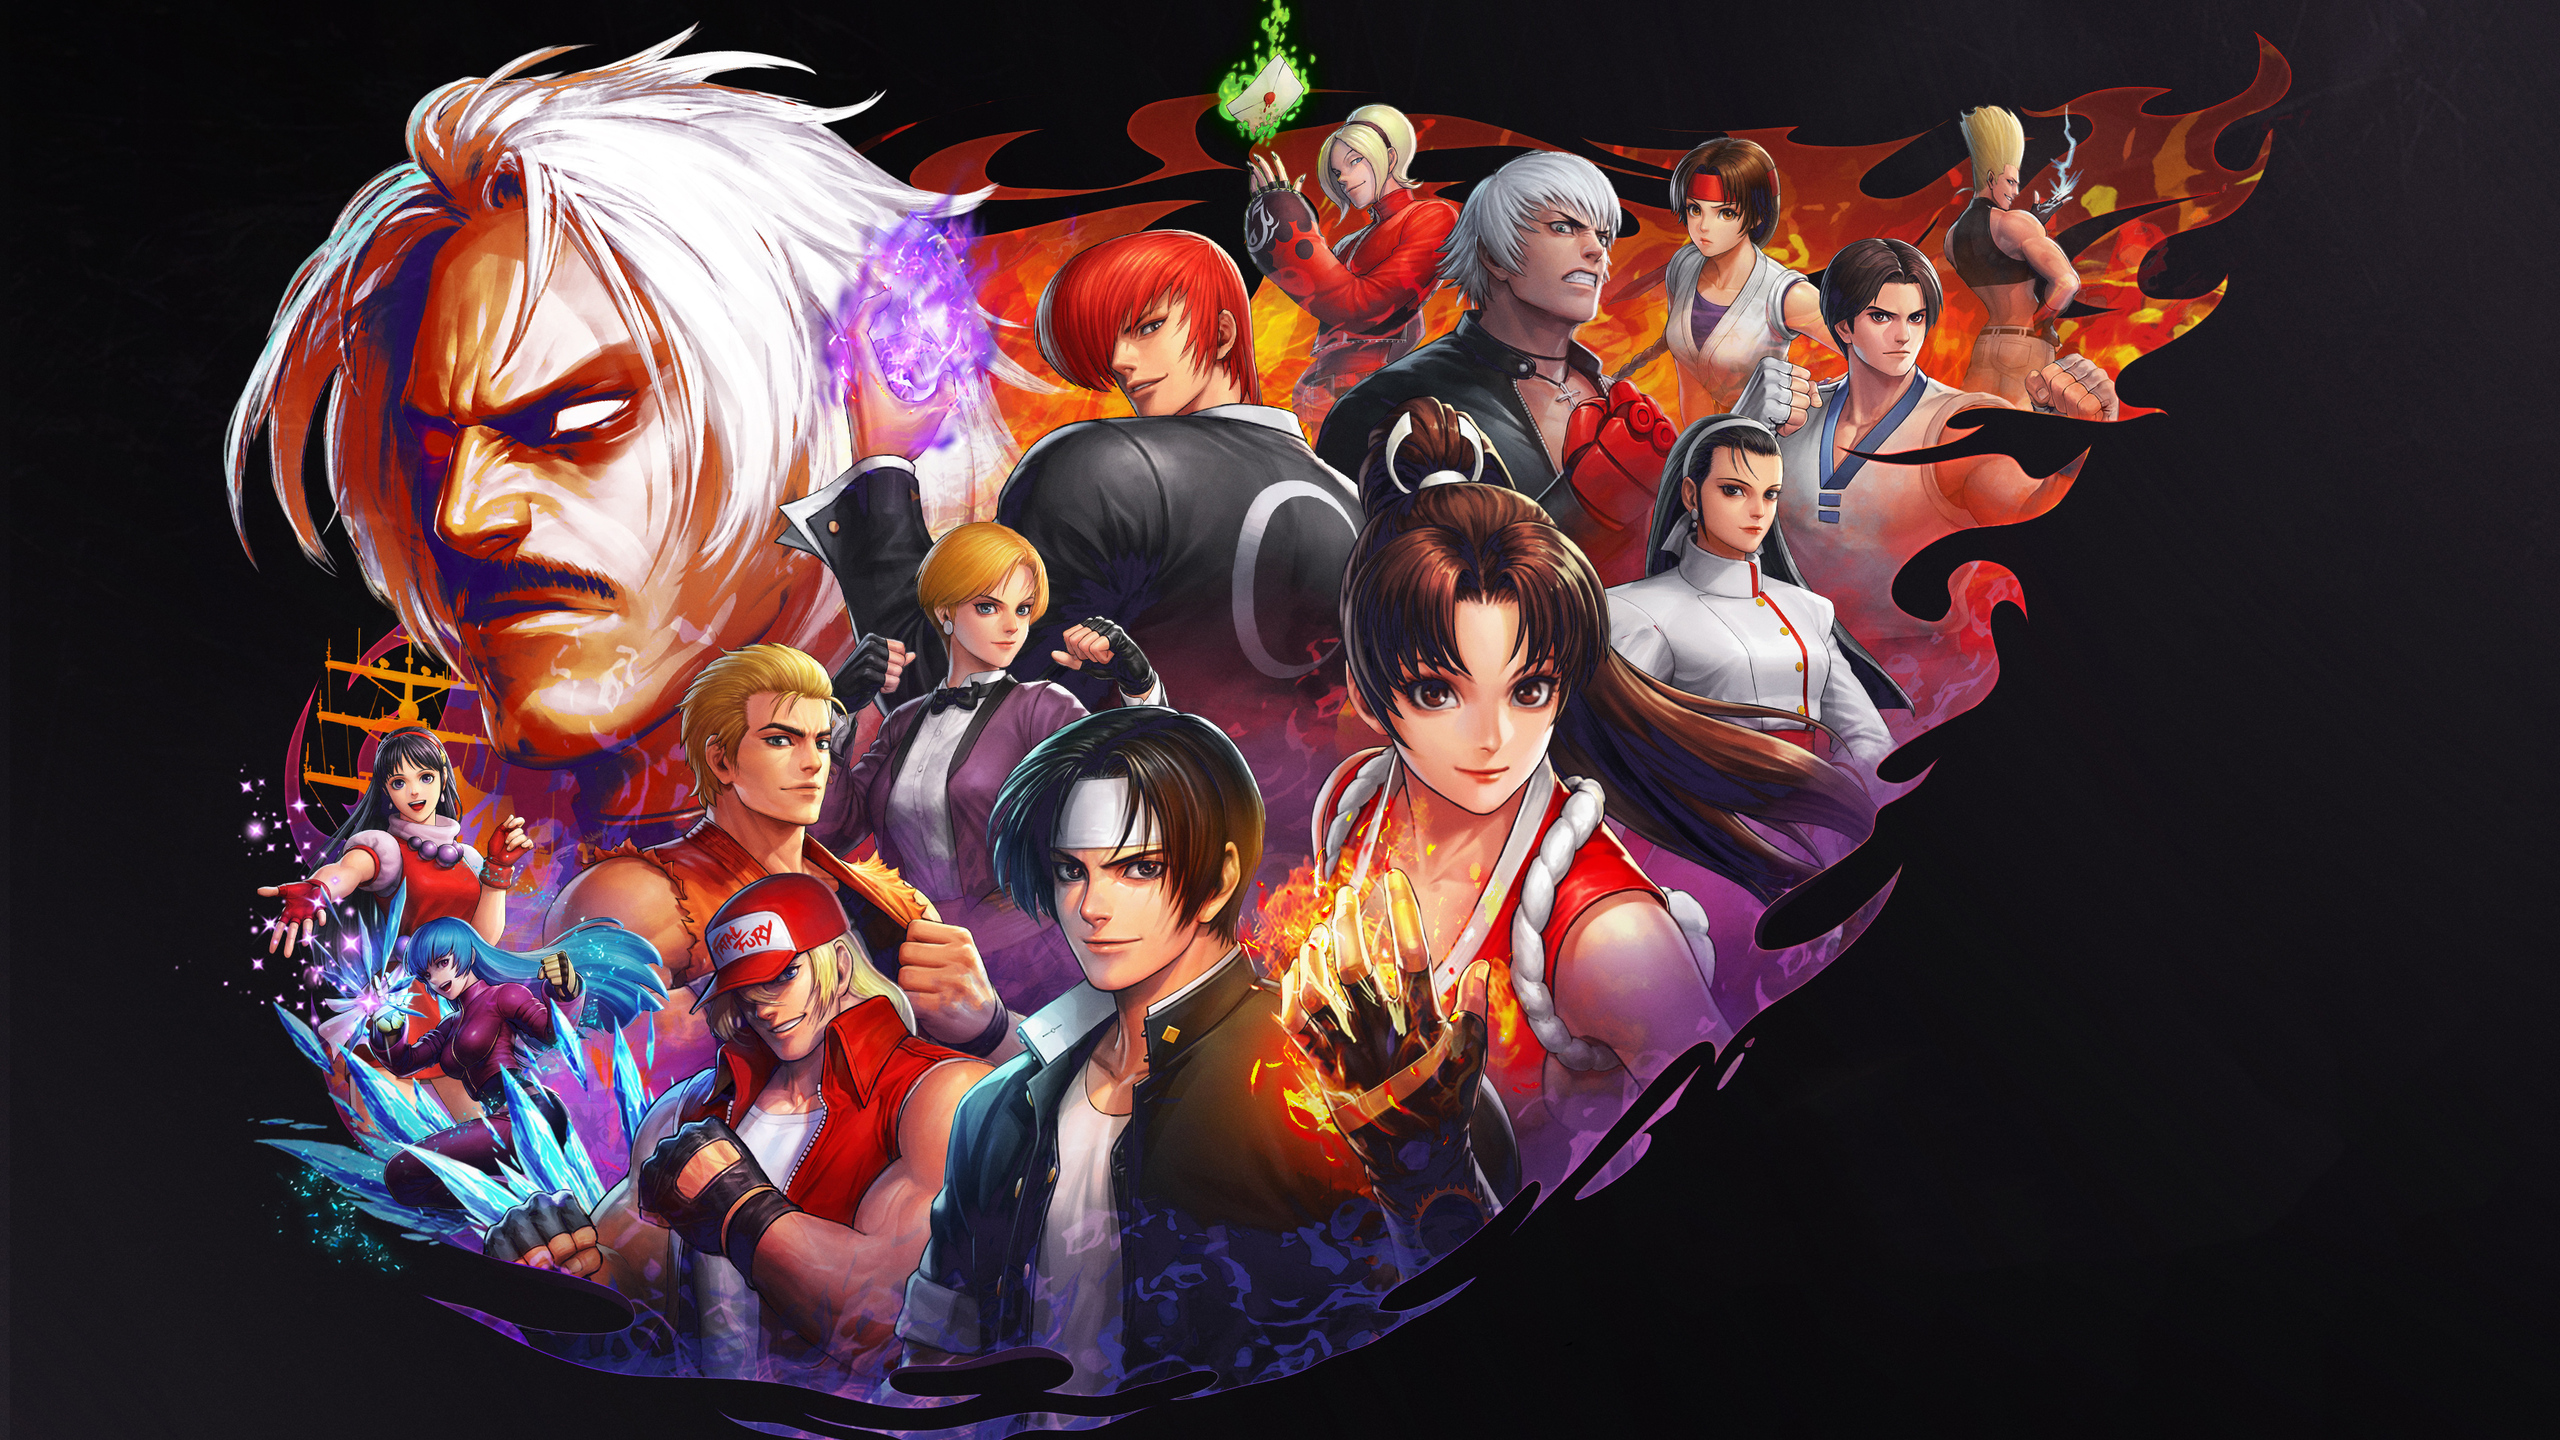 2560x1440 The King Of Fighters All Star 1440p Resolution Hd